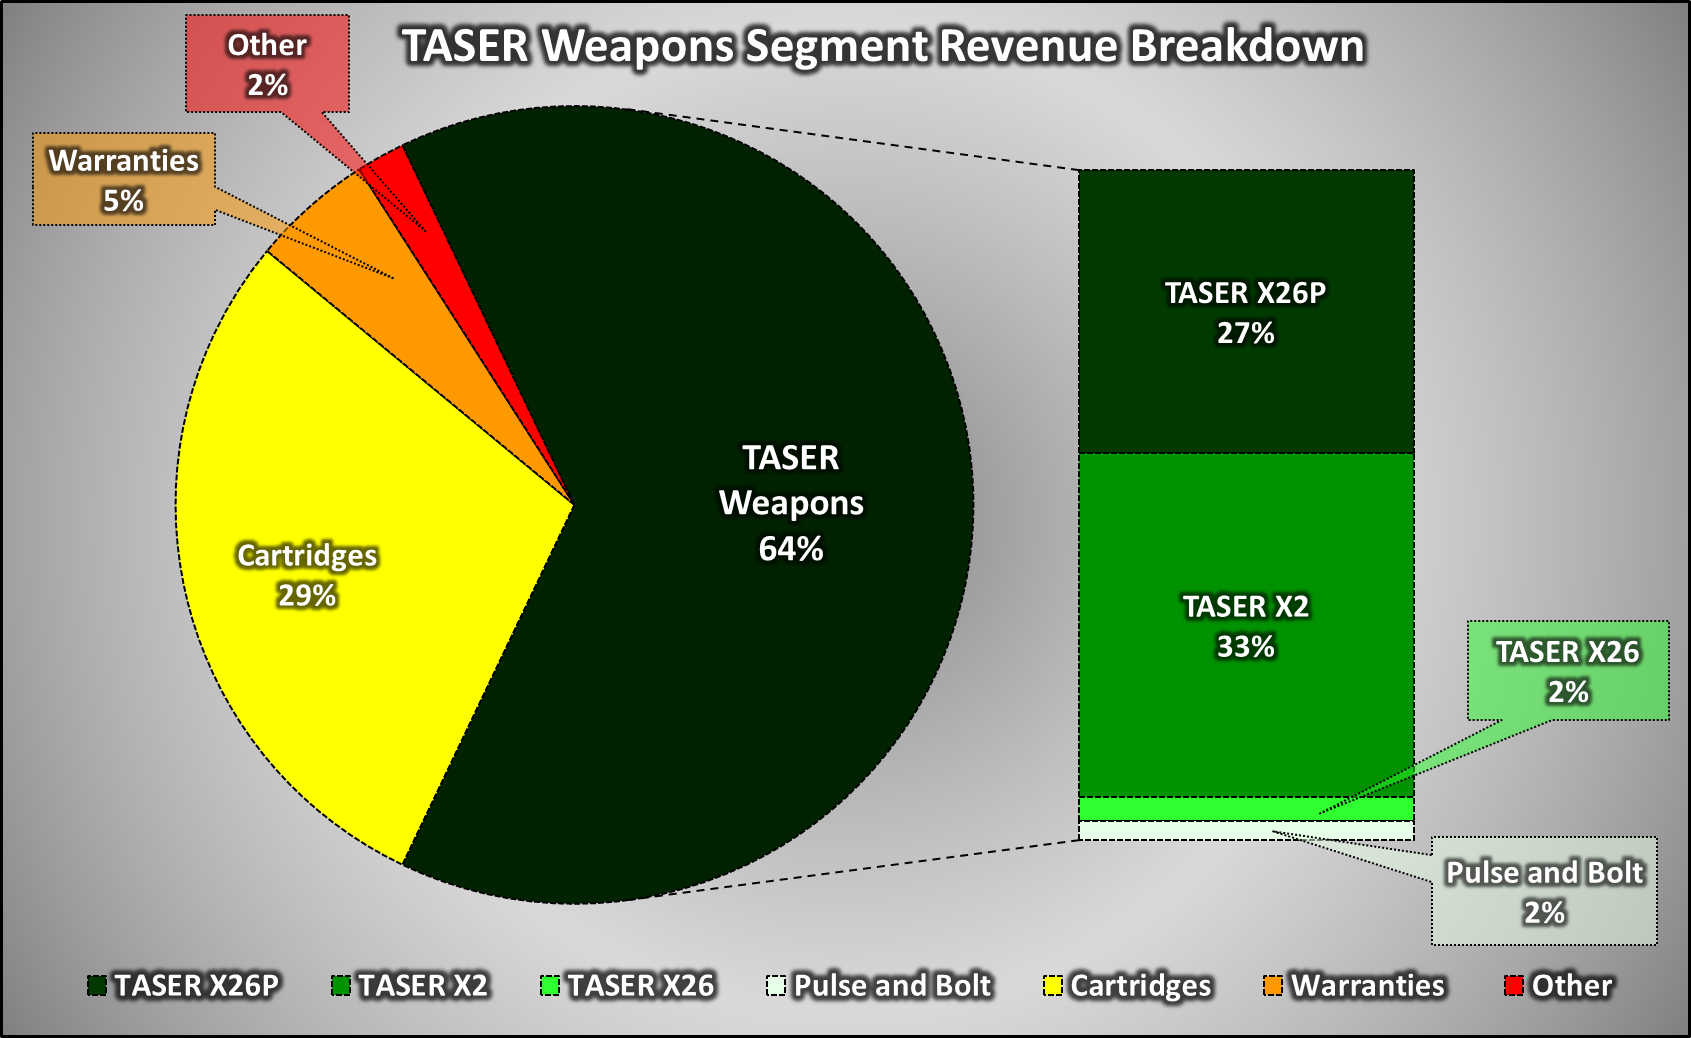 Axon Enterprise High Quality Broad Based Growth With The Bear Case Free Information Society Stun Gun Electronic Circuit Schematic Below Is A Graphical Breakdown Of Revenue Categories Within Taser Weapons Segment For Most Recent Quarter